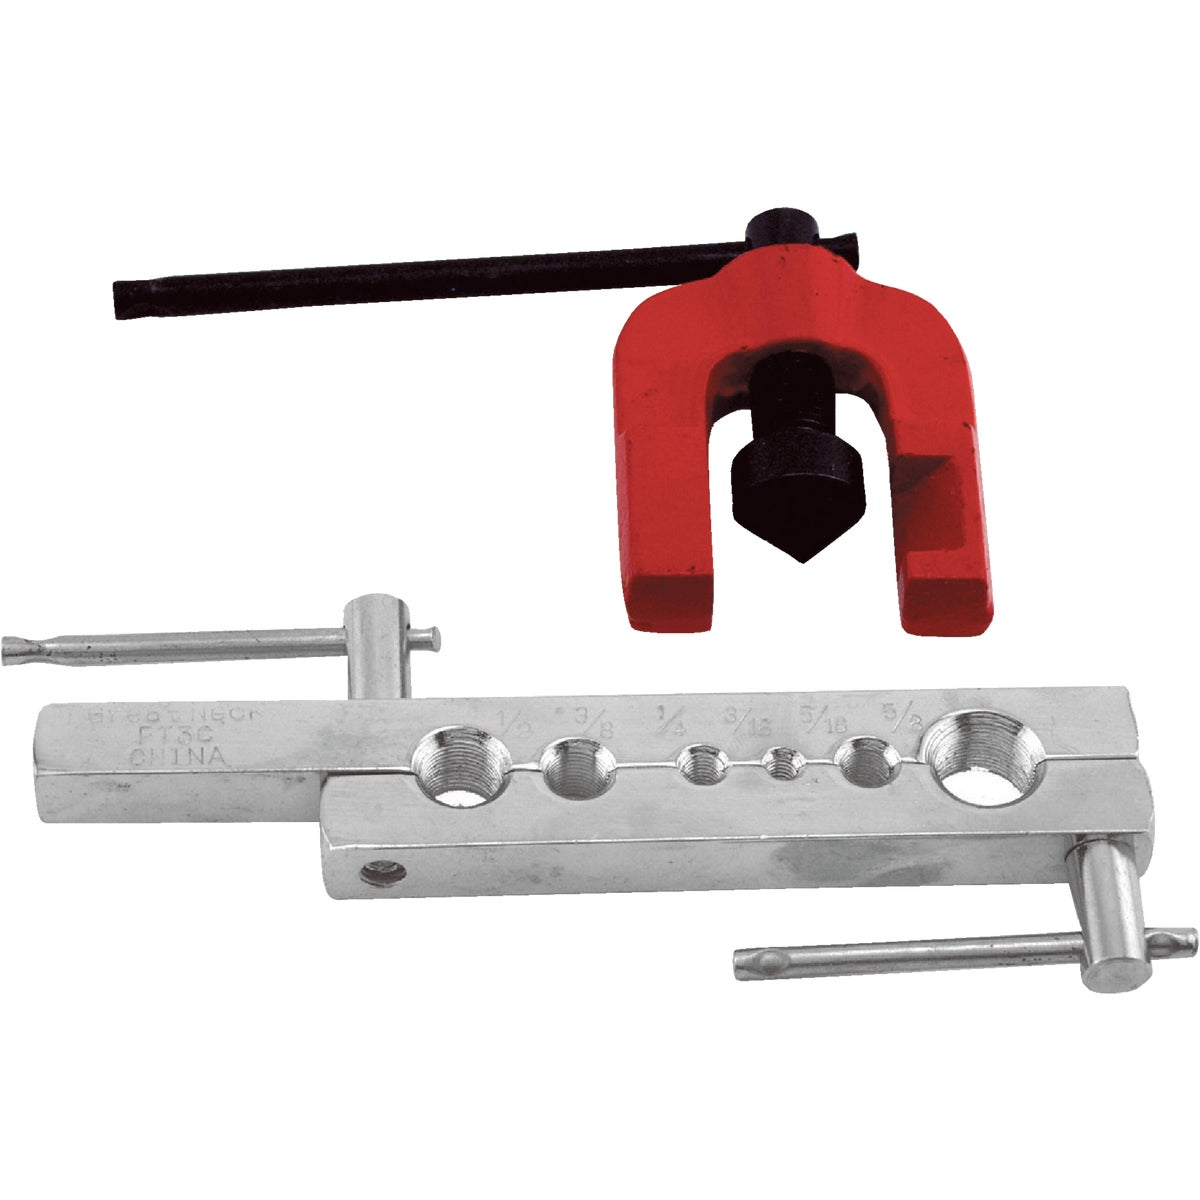 FLARING TOOL - FT3C by Great Neck Saw Inc